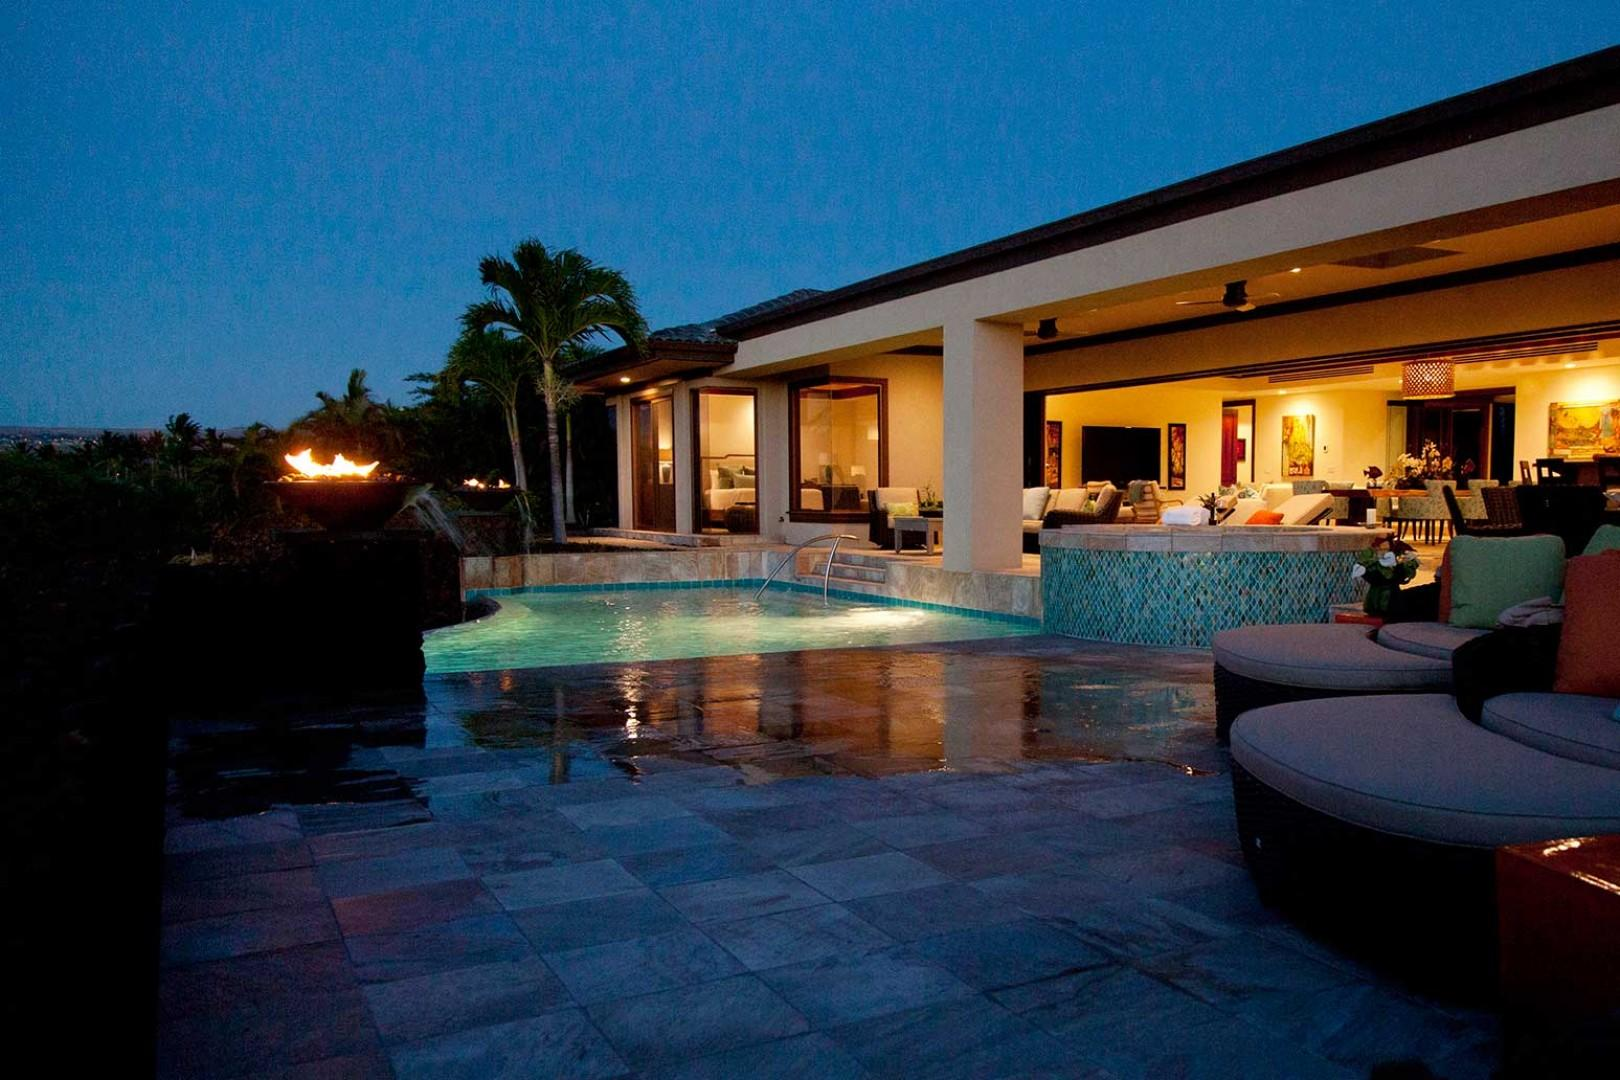 Evening shot of pool deck with view to covered lanai and interior of home.